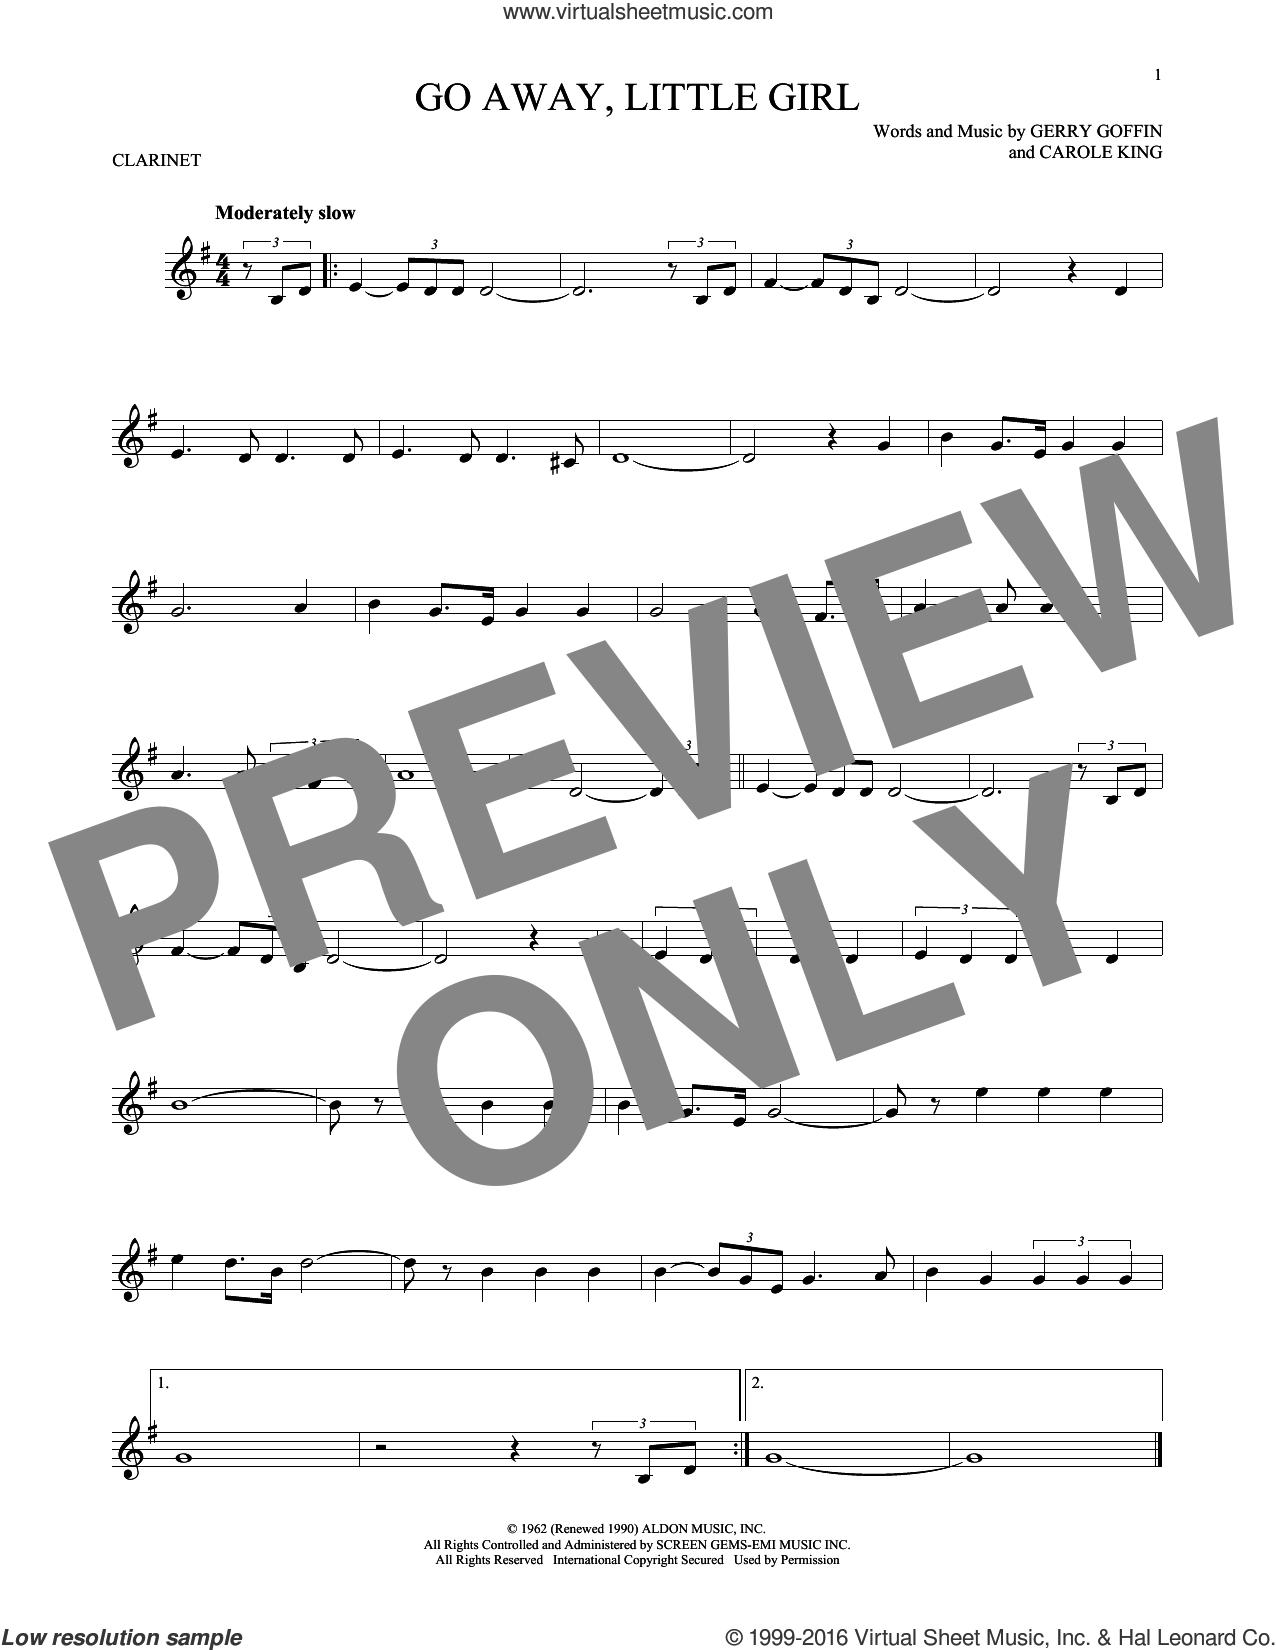 Go Away, Little Girl sheet music for clarinet solo by Donny Osmond, Steve Lawrence, Carole King and Gerry Goffin, intermediate skill level